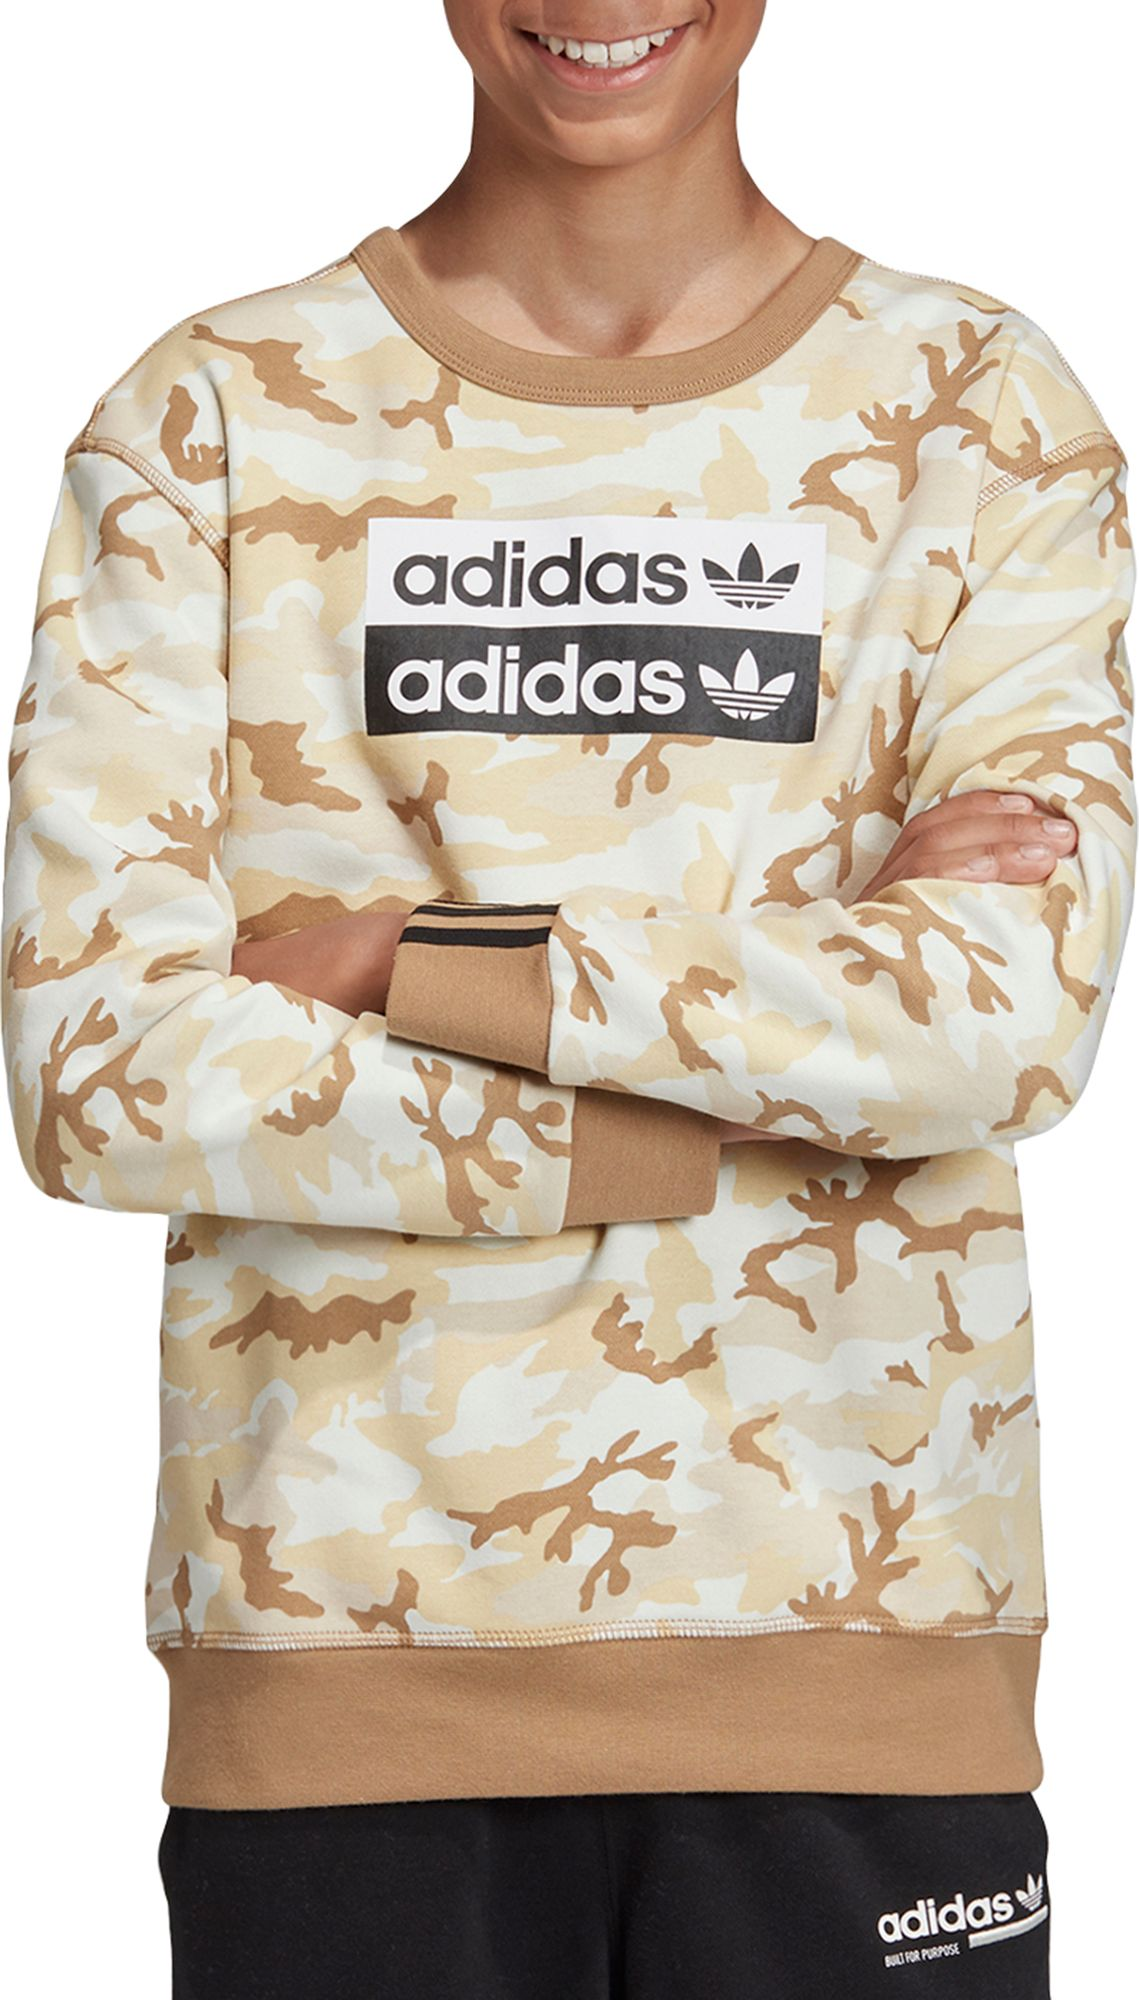 adidas Originals Boy's Vocal Camo Crewneck Sweatshirt, Size: XS, Green thumbnail